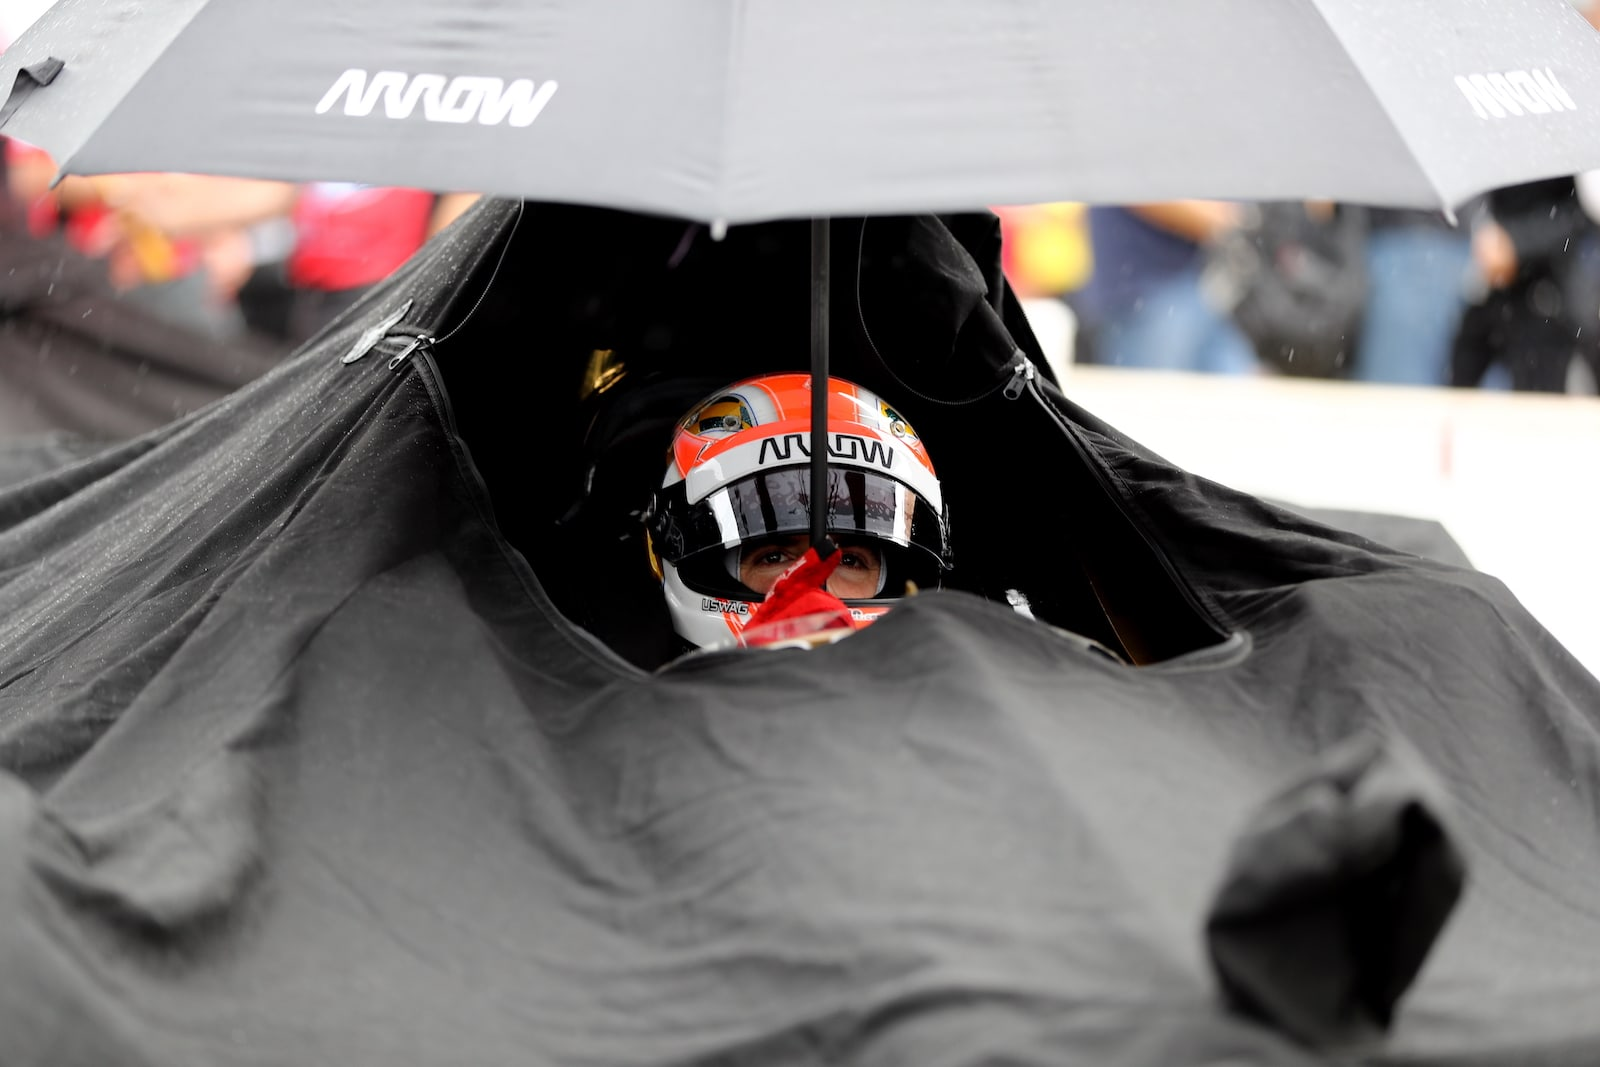 James Hinchcliffe during Indy 500 qualifying rain delay